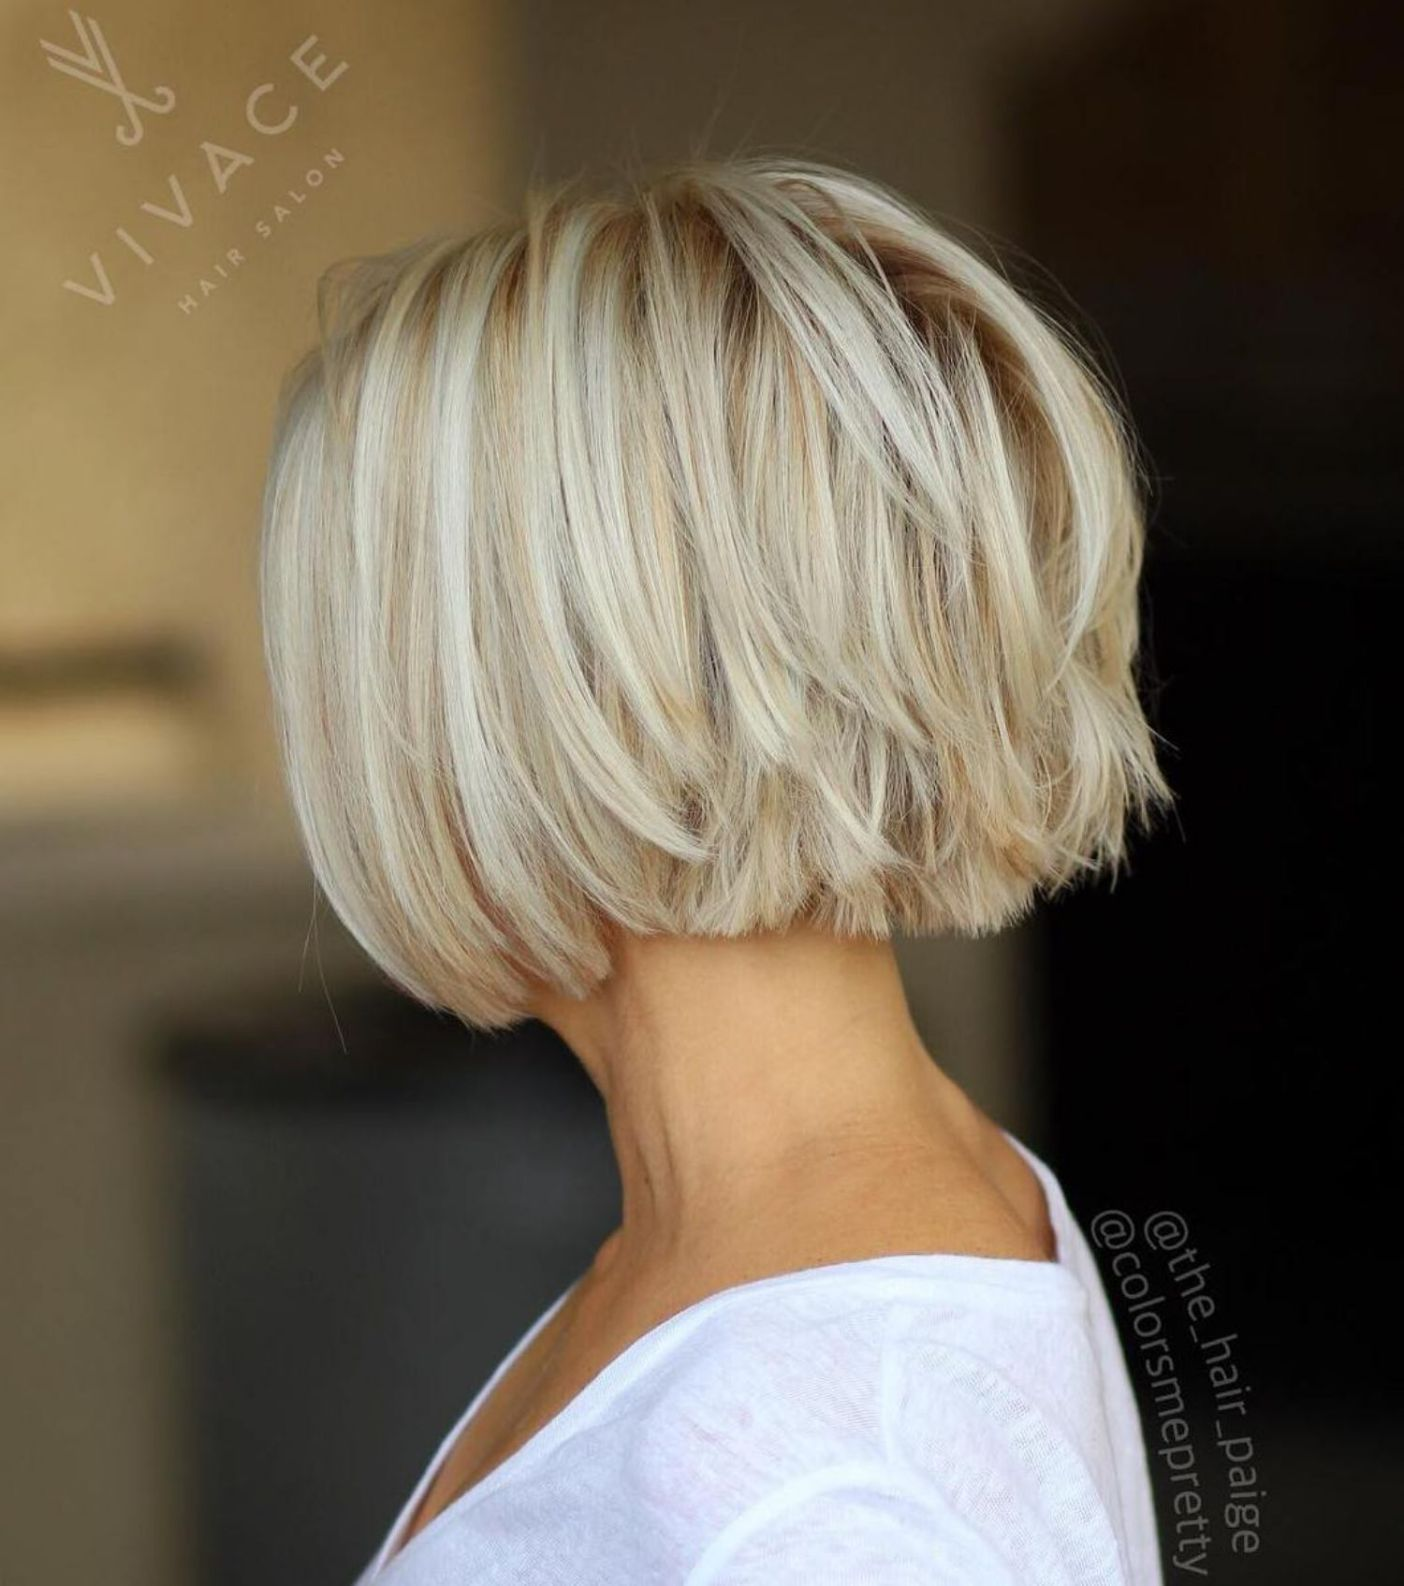 9 Mind-Blowing Short Hairstyles for Fine Hair  Straight blonde